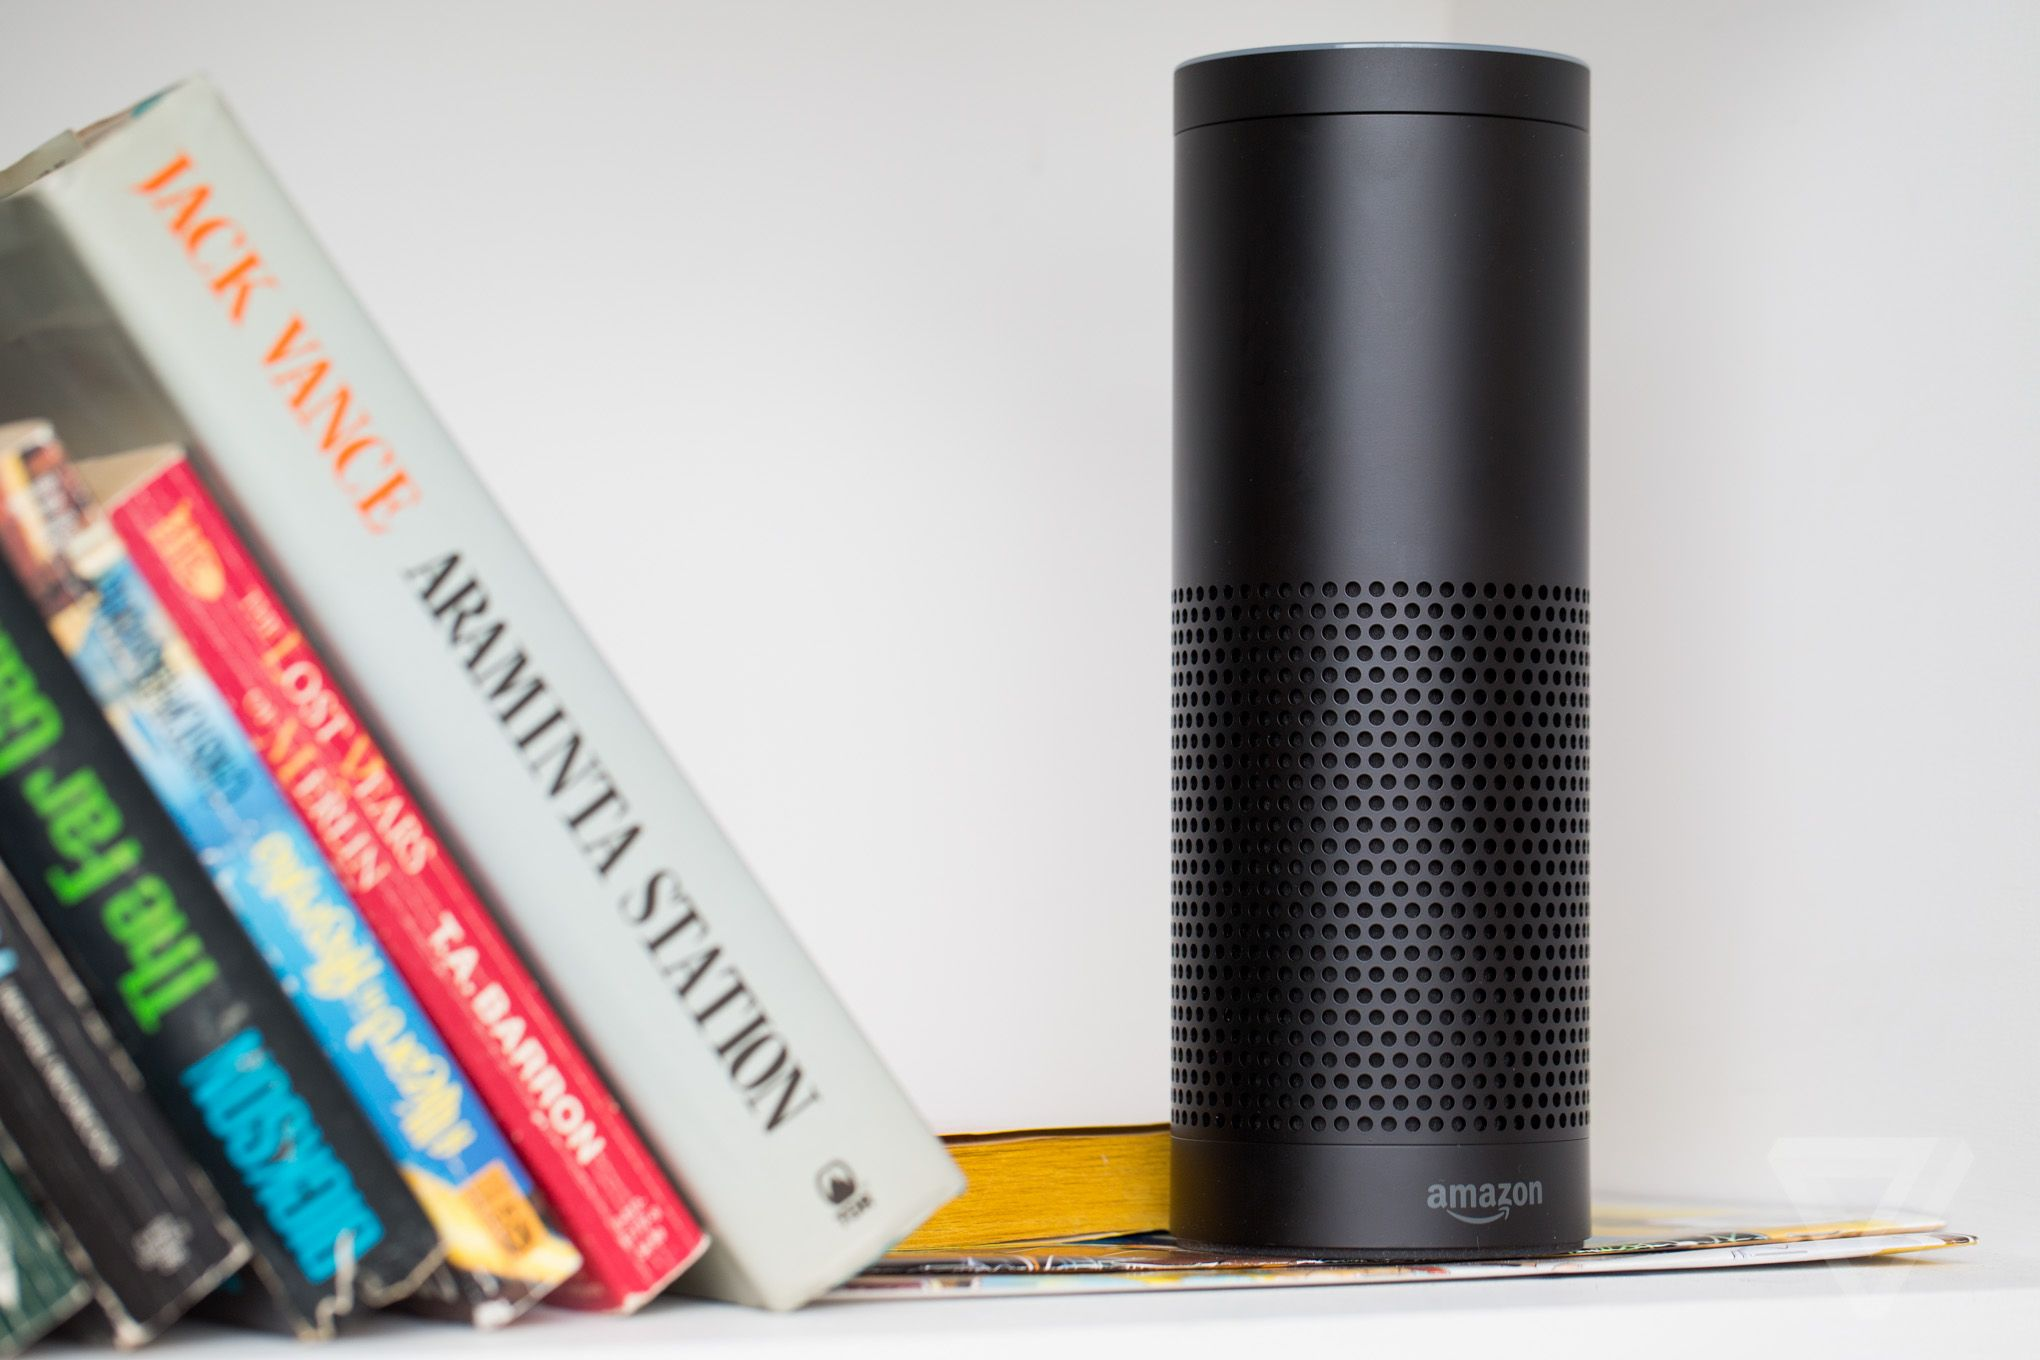 How to Enable Quiet Hours on an Echo Device